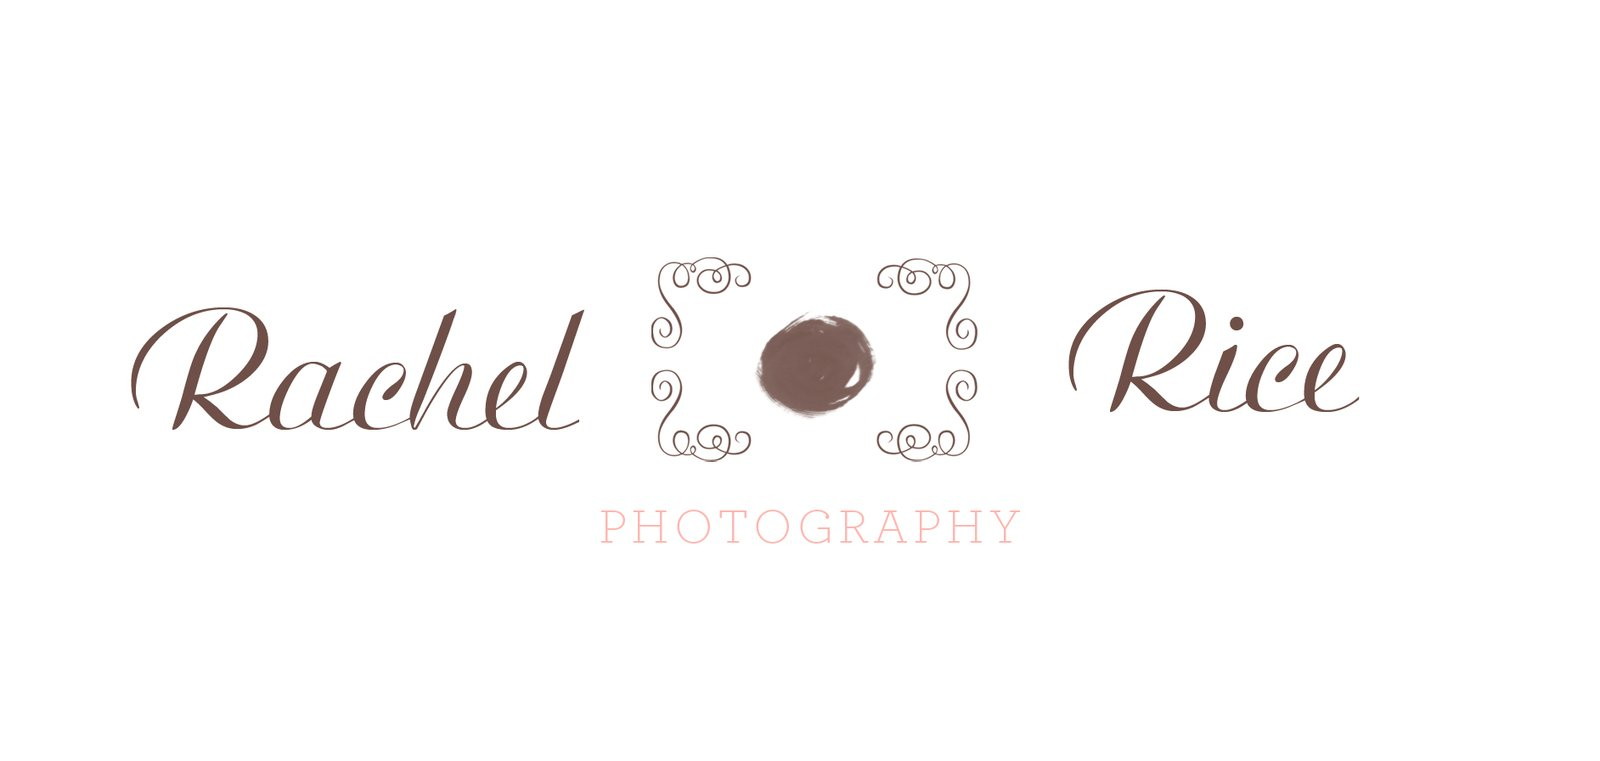 Rachel Rice Photography